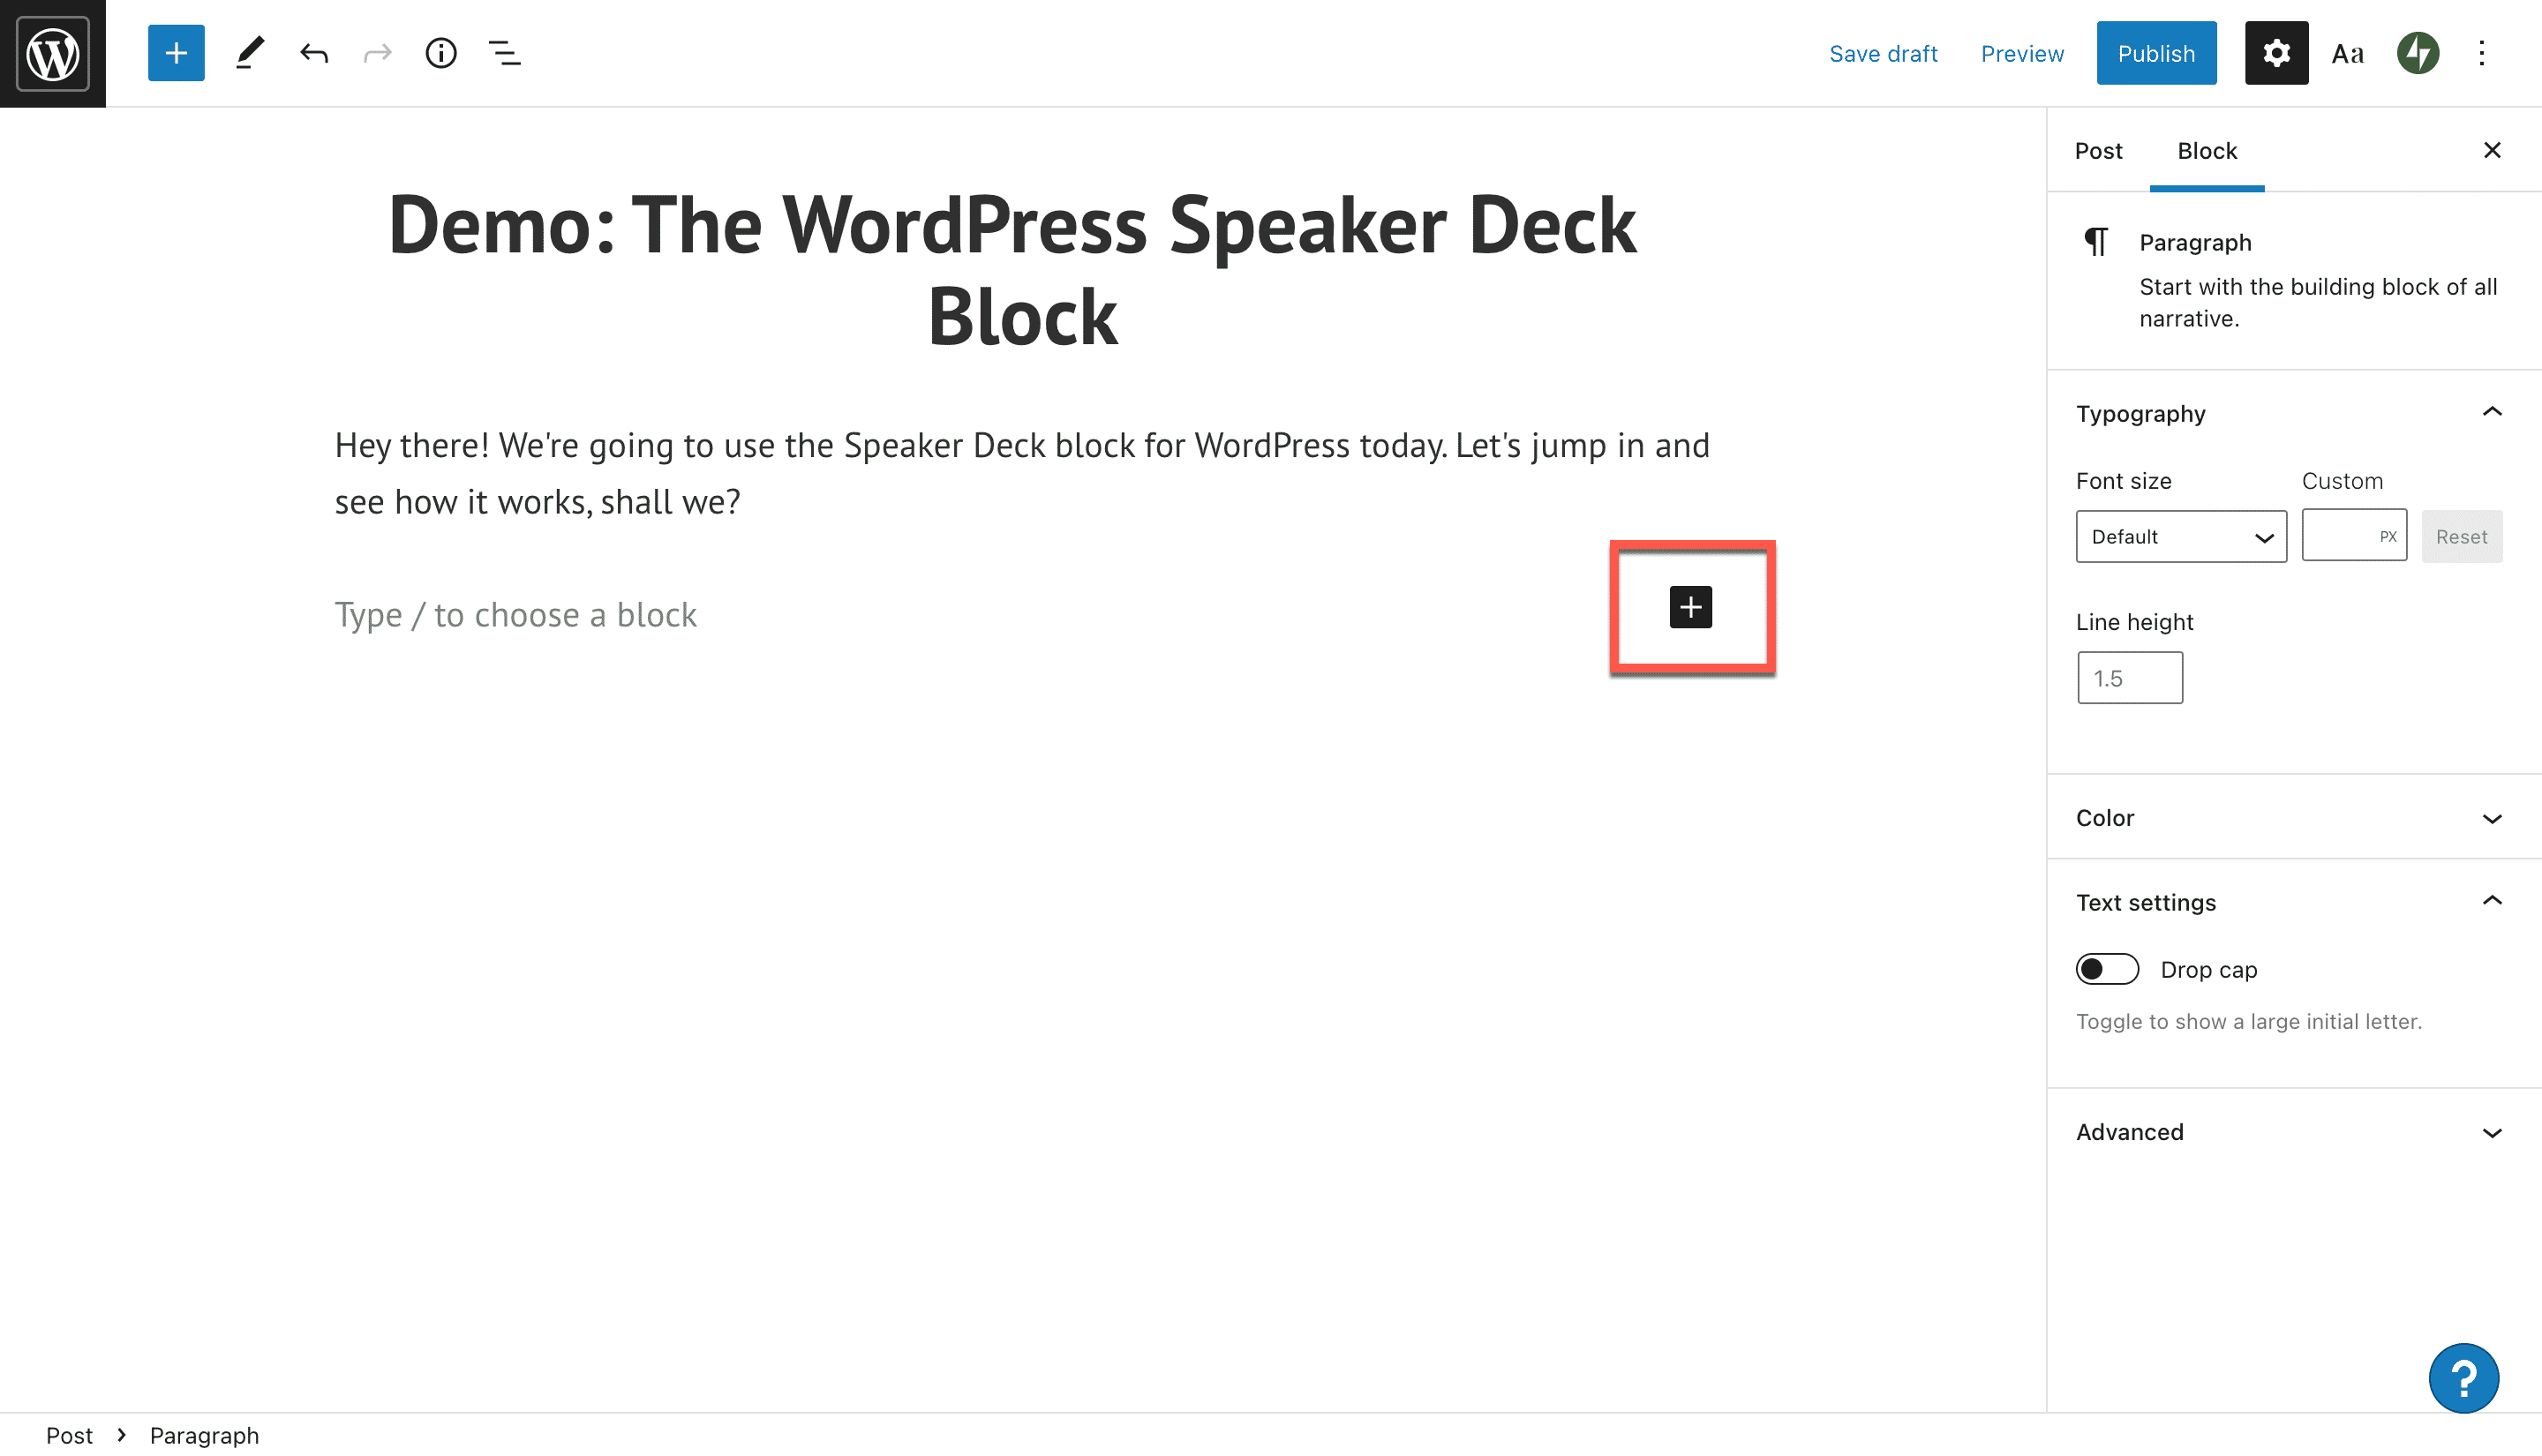 how-to-use-the-wordpress-speaker-deck-embed-block 如何使用 WordPress Speaker Deck 嵌入块